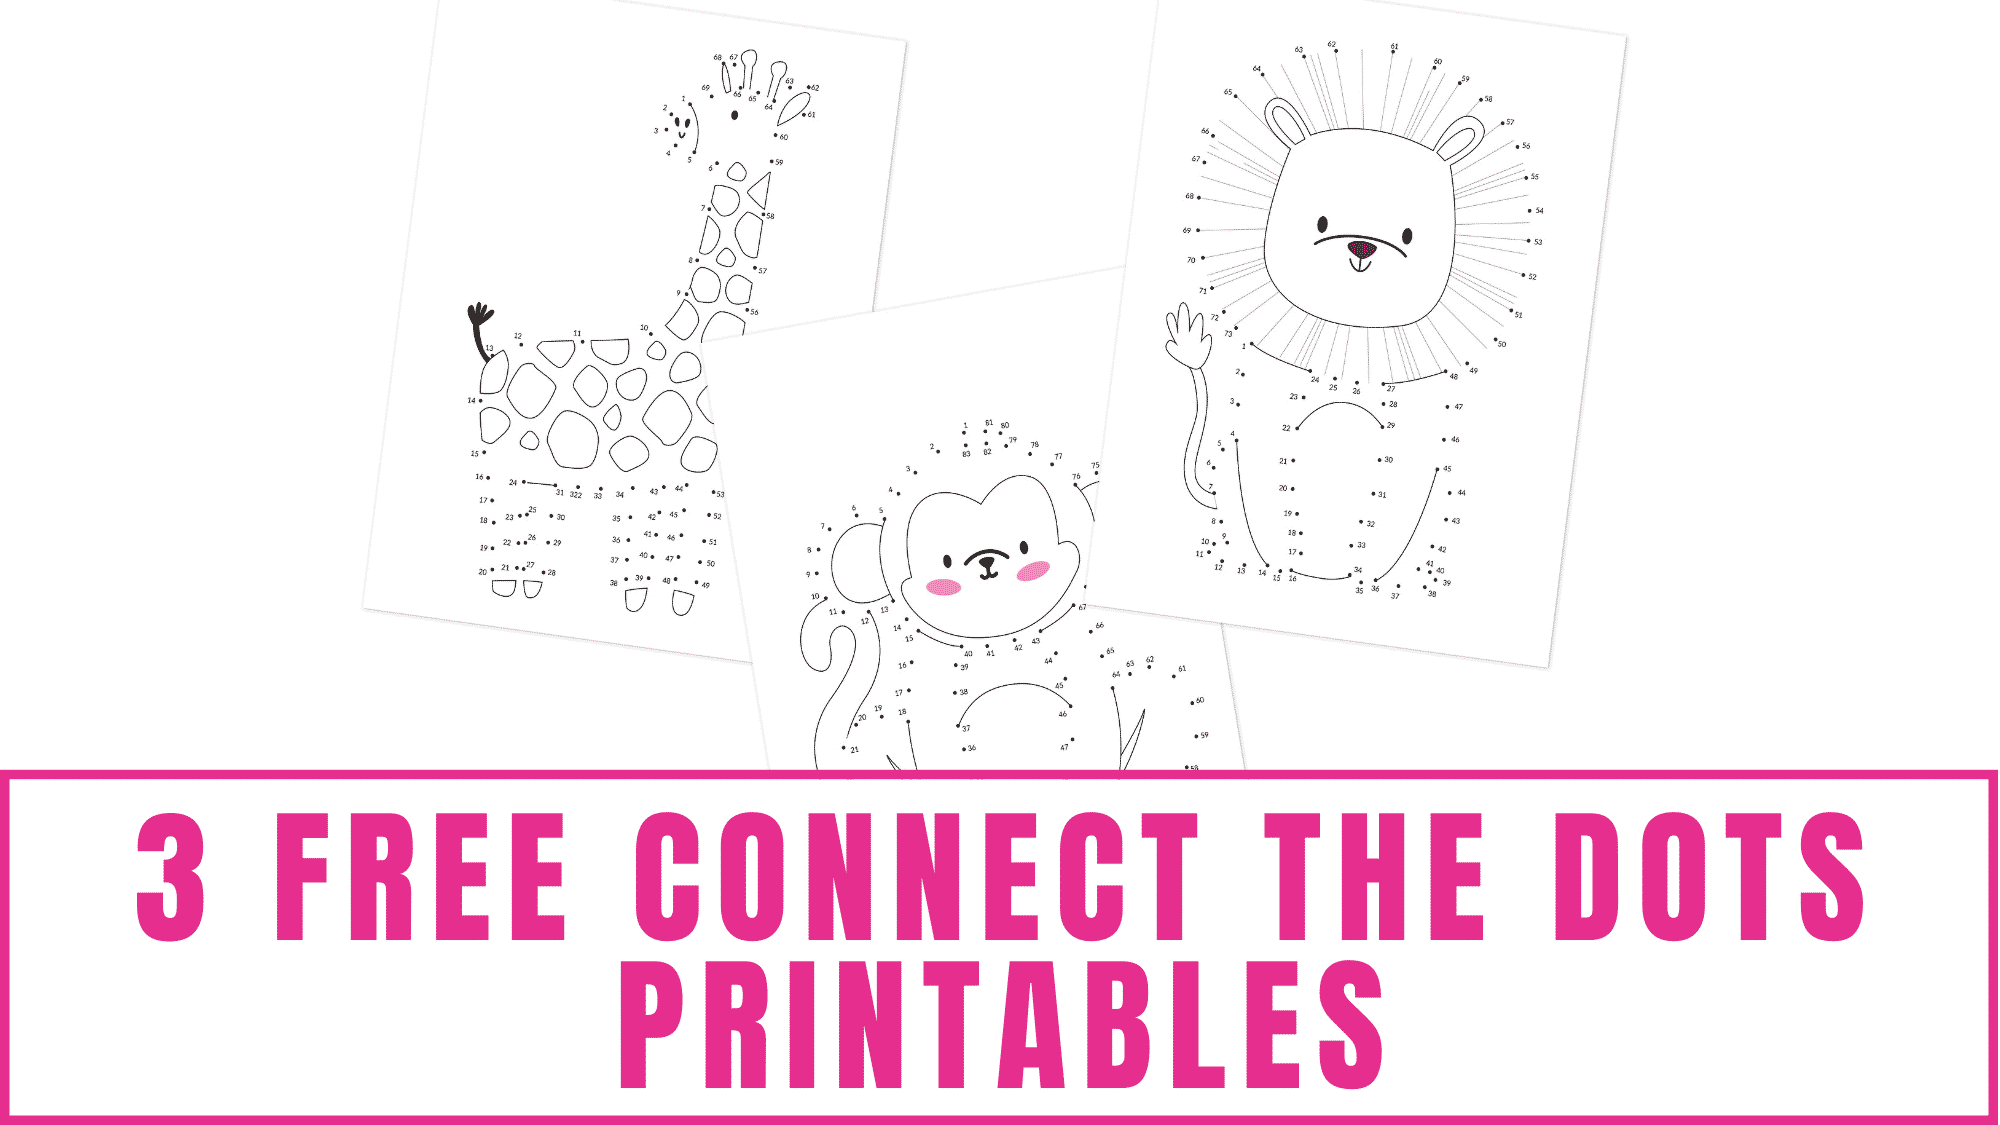 Three free connect the dots printables of animals.